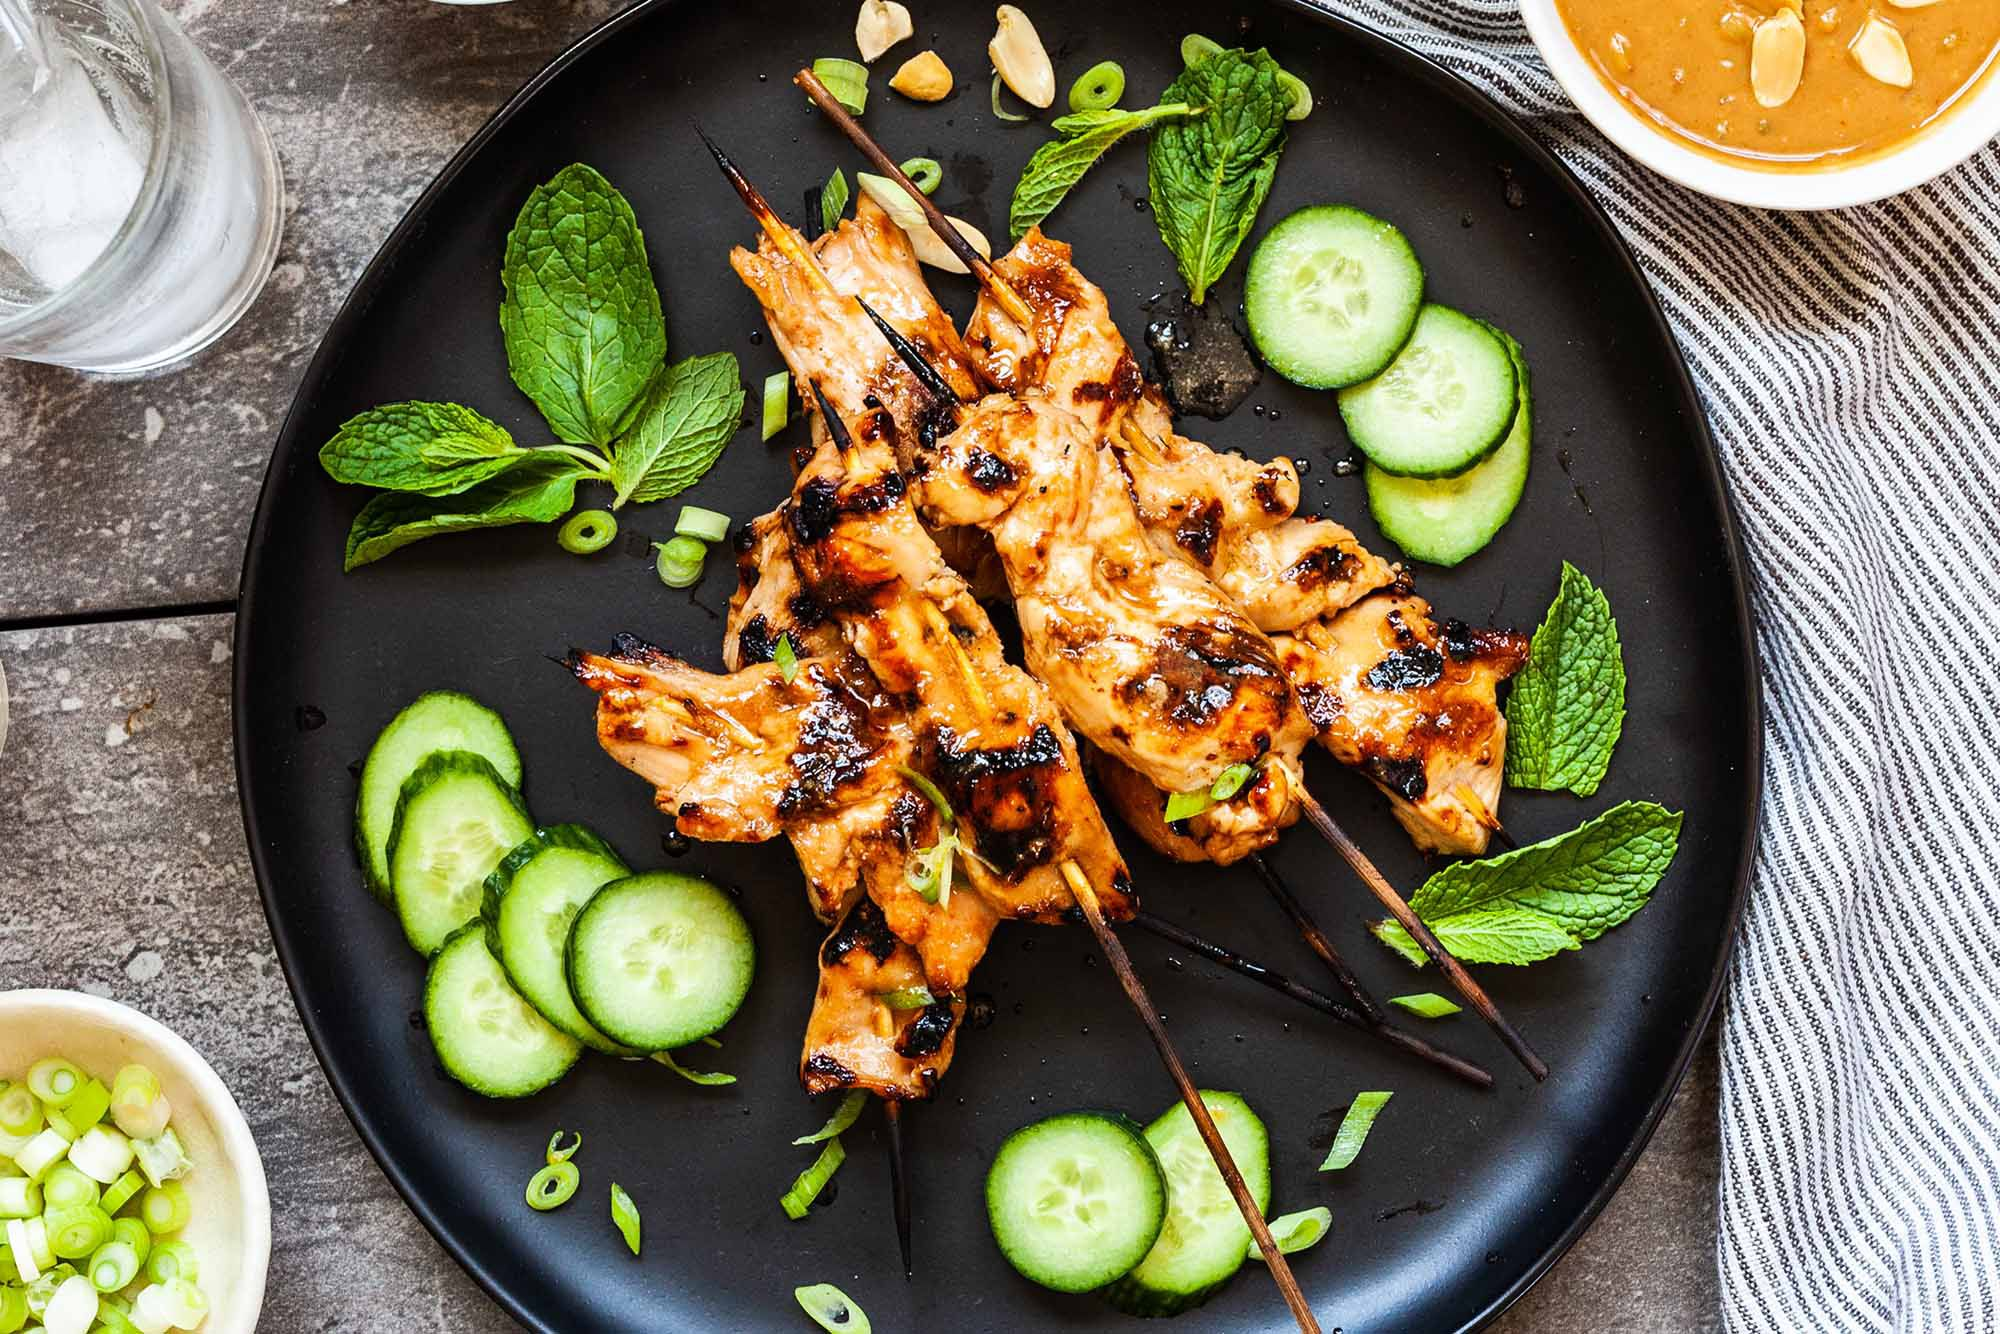 Grilled Chicken Satay With Peanut Sauce Recipe